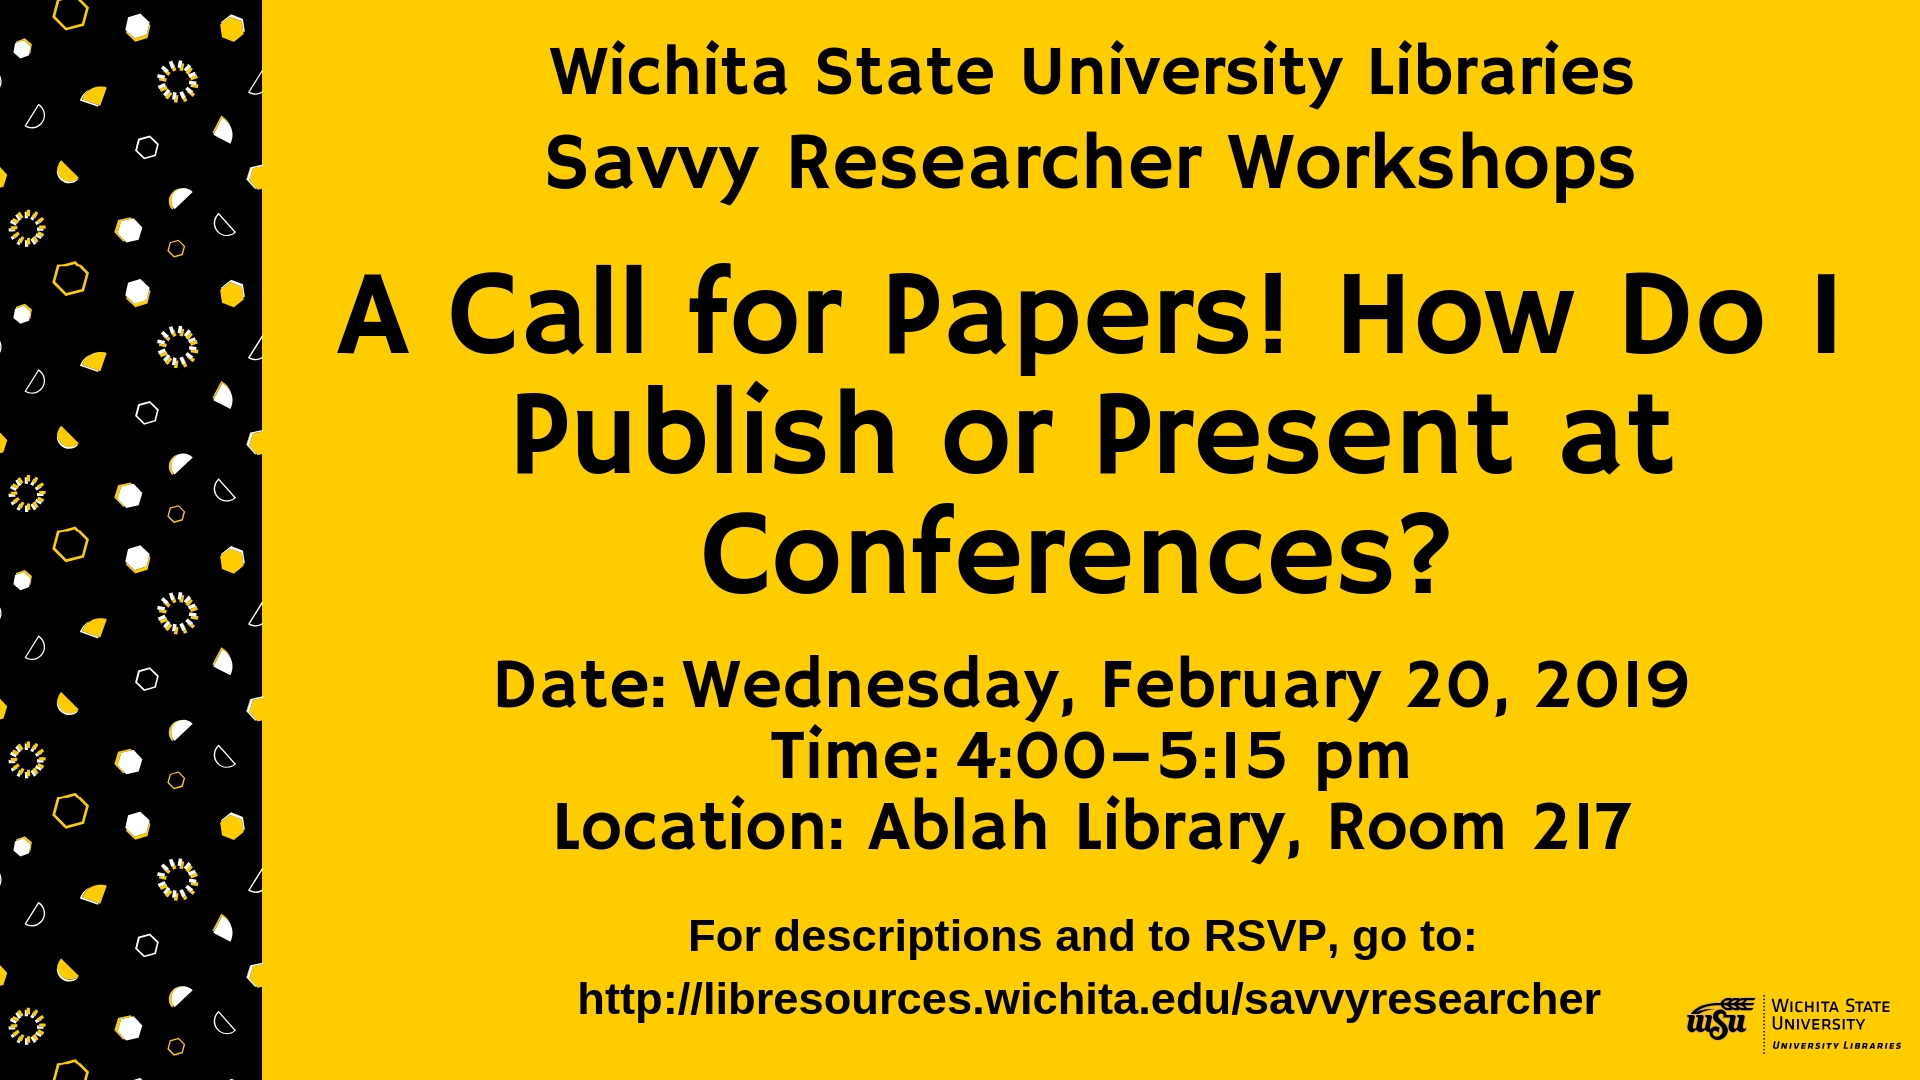 A Call for Papers! How Do I Publish or Present at Conferences?